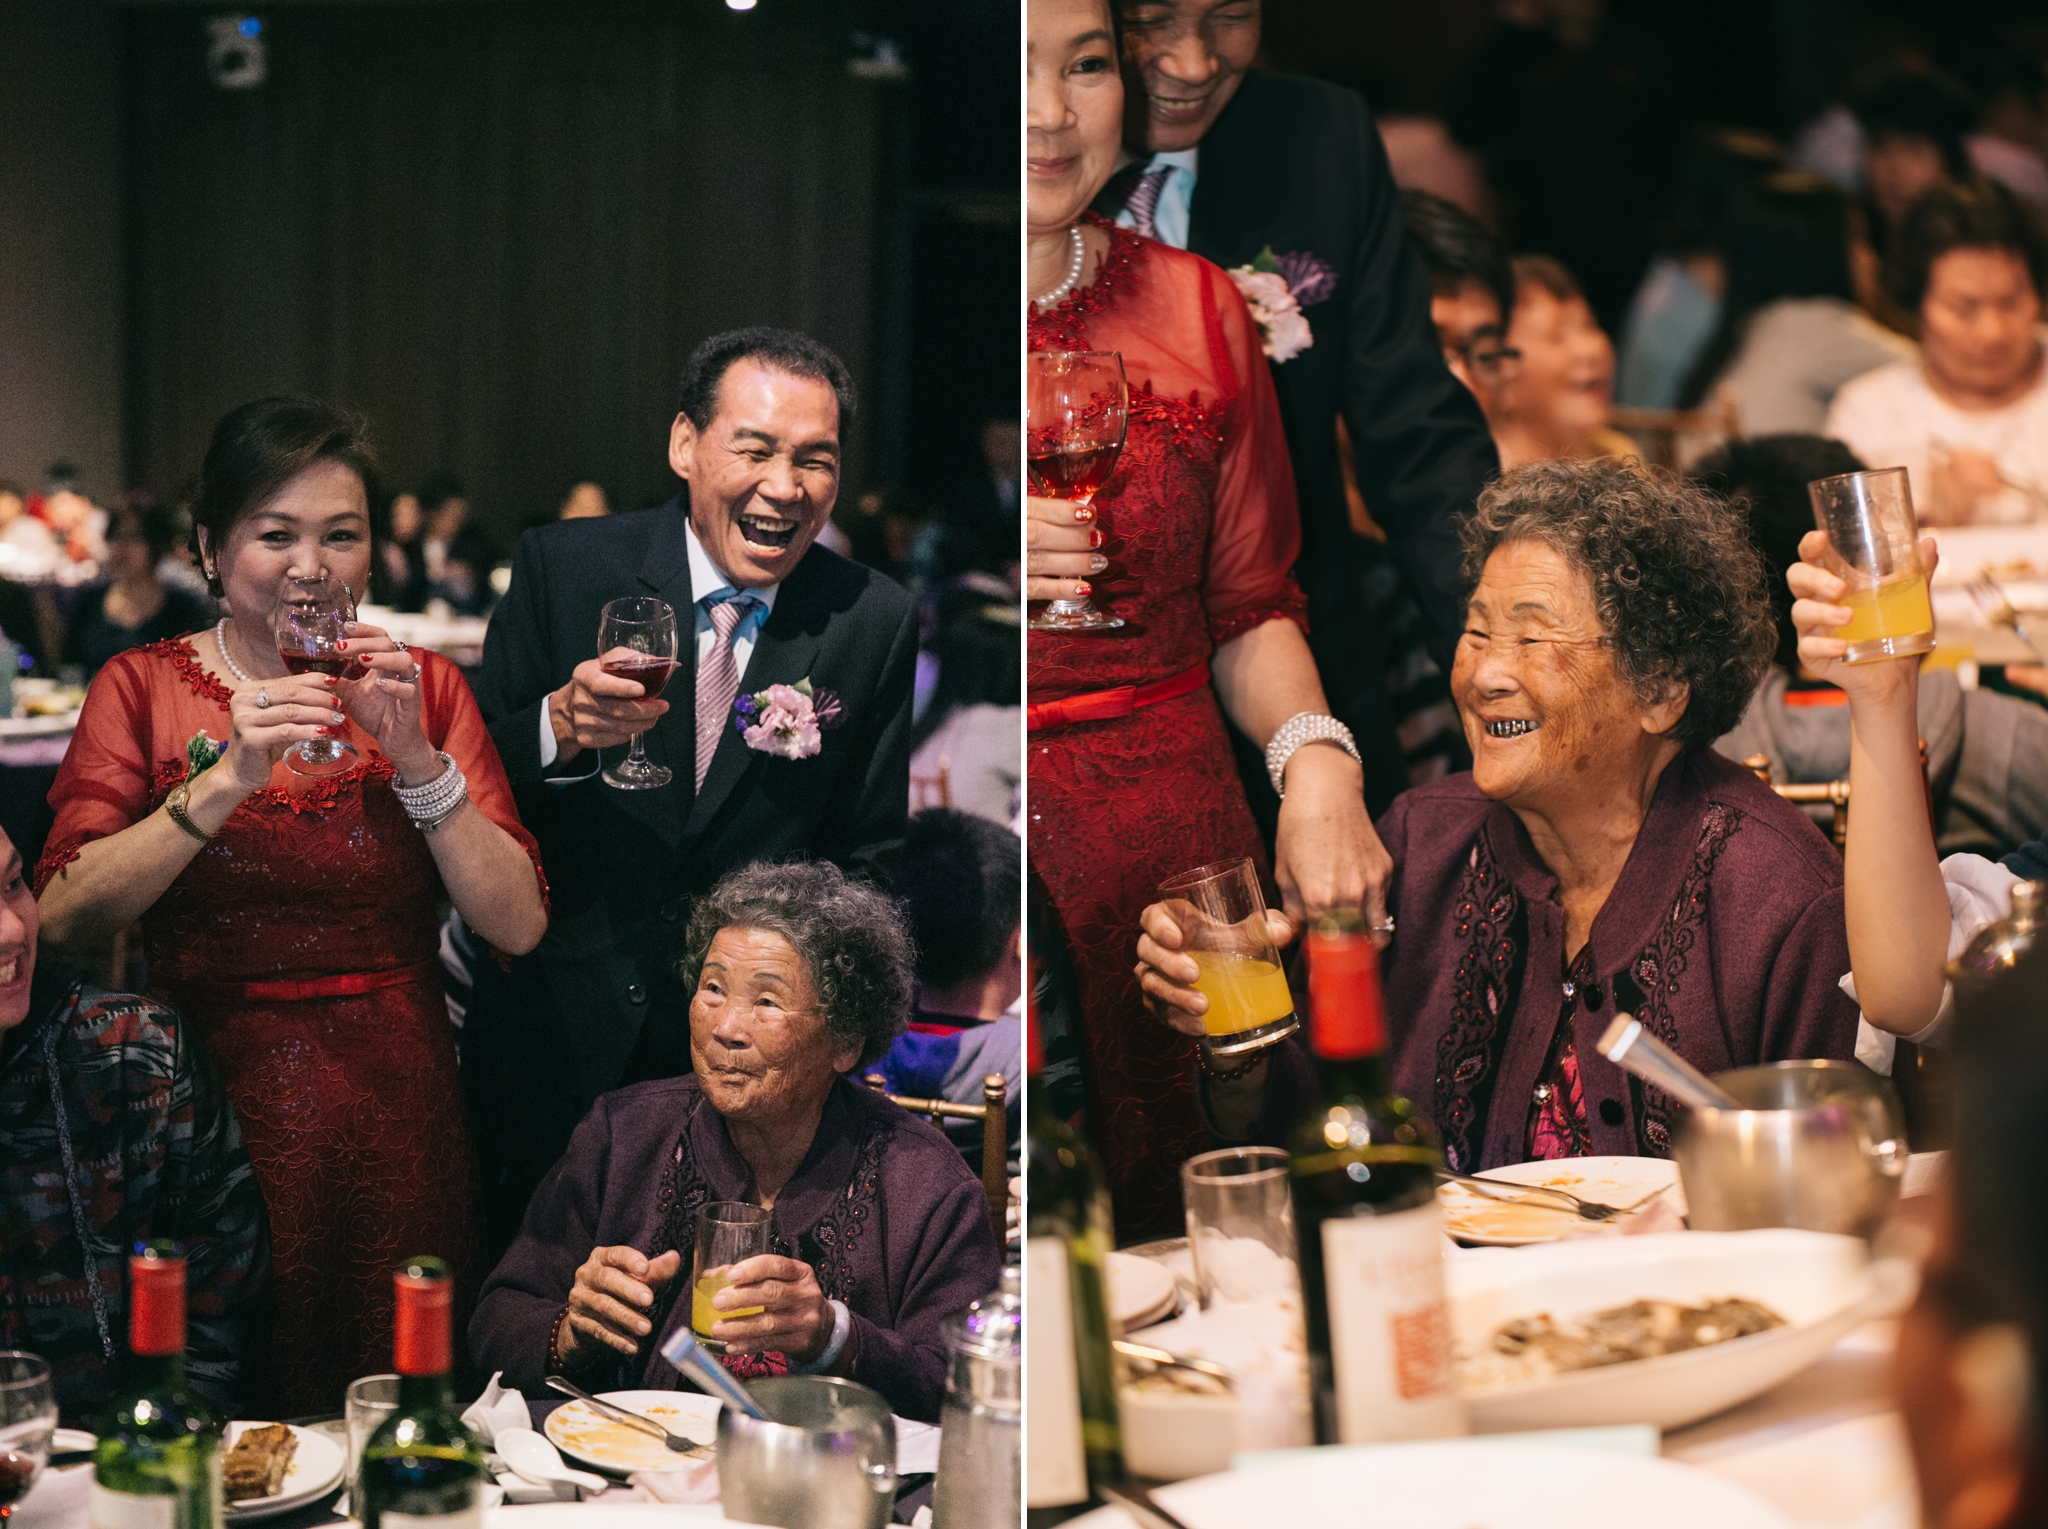 Keddy+Richard-wedding-新莊頤品飯店-222.jpg